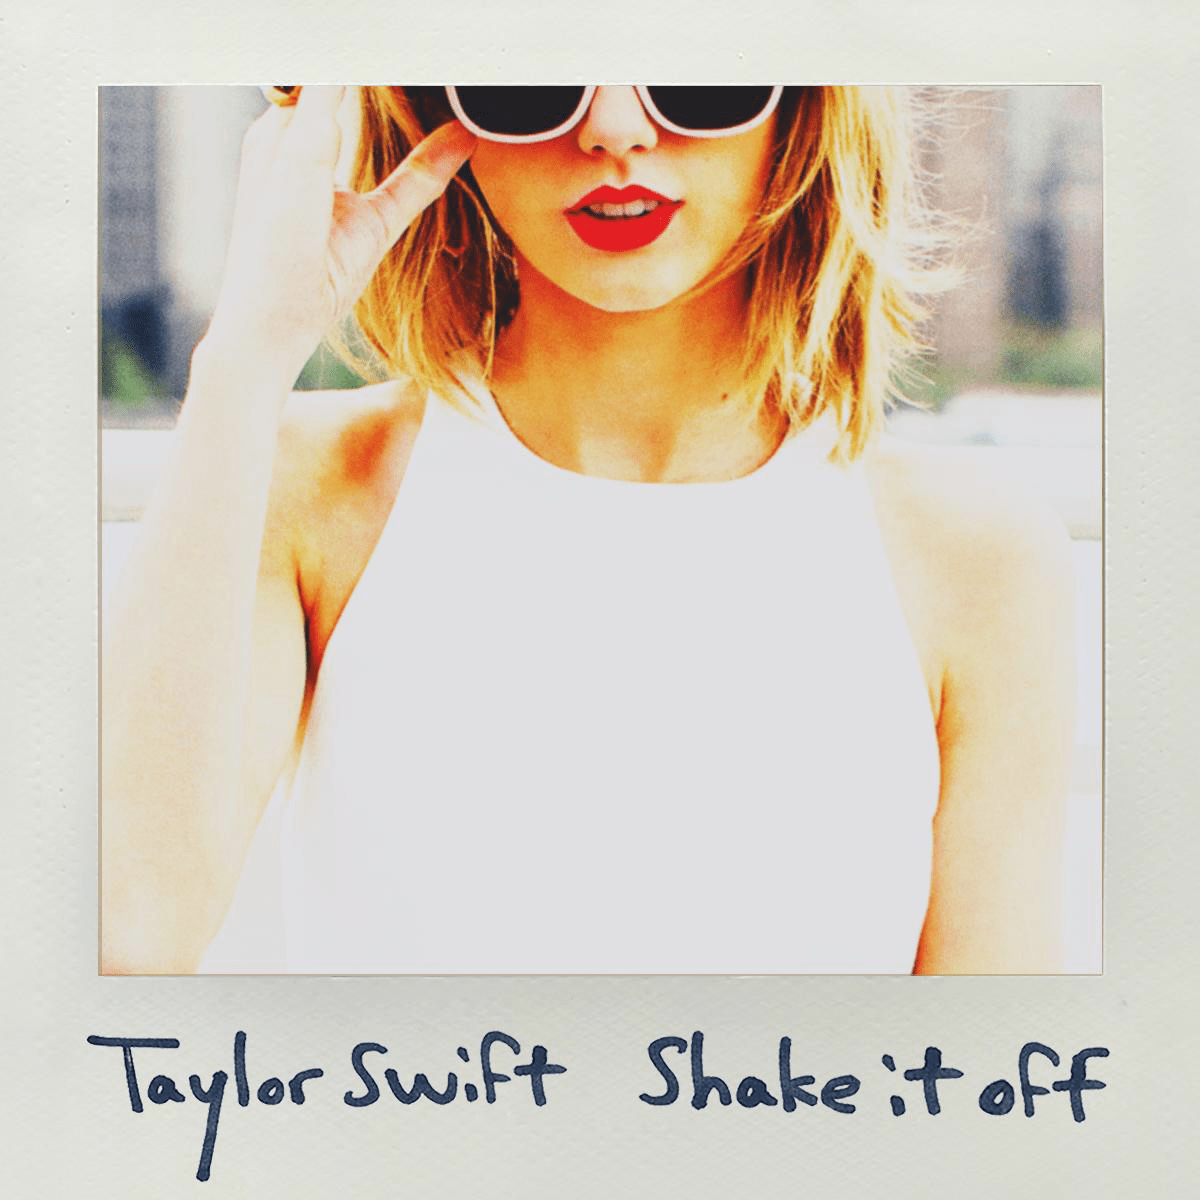 Taylor-Swift-Shake-It-Off-Judah-2014